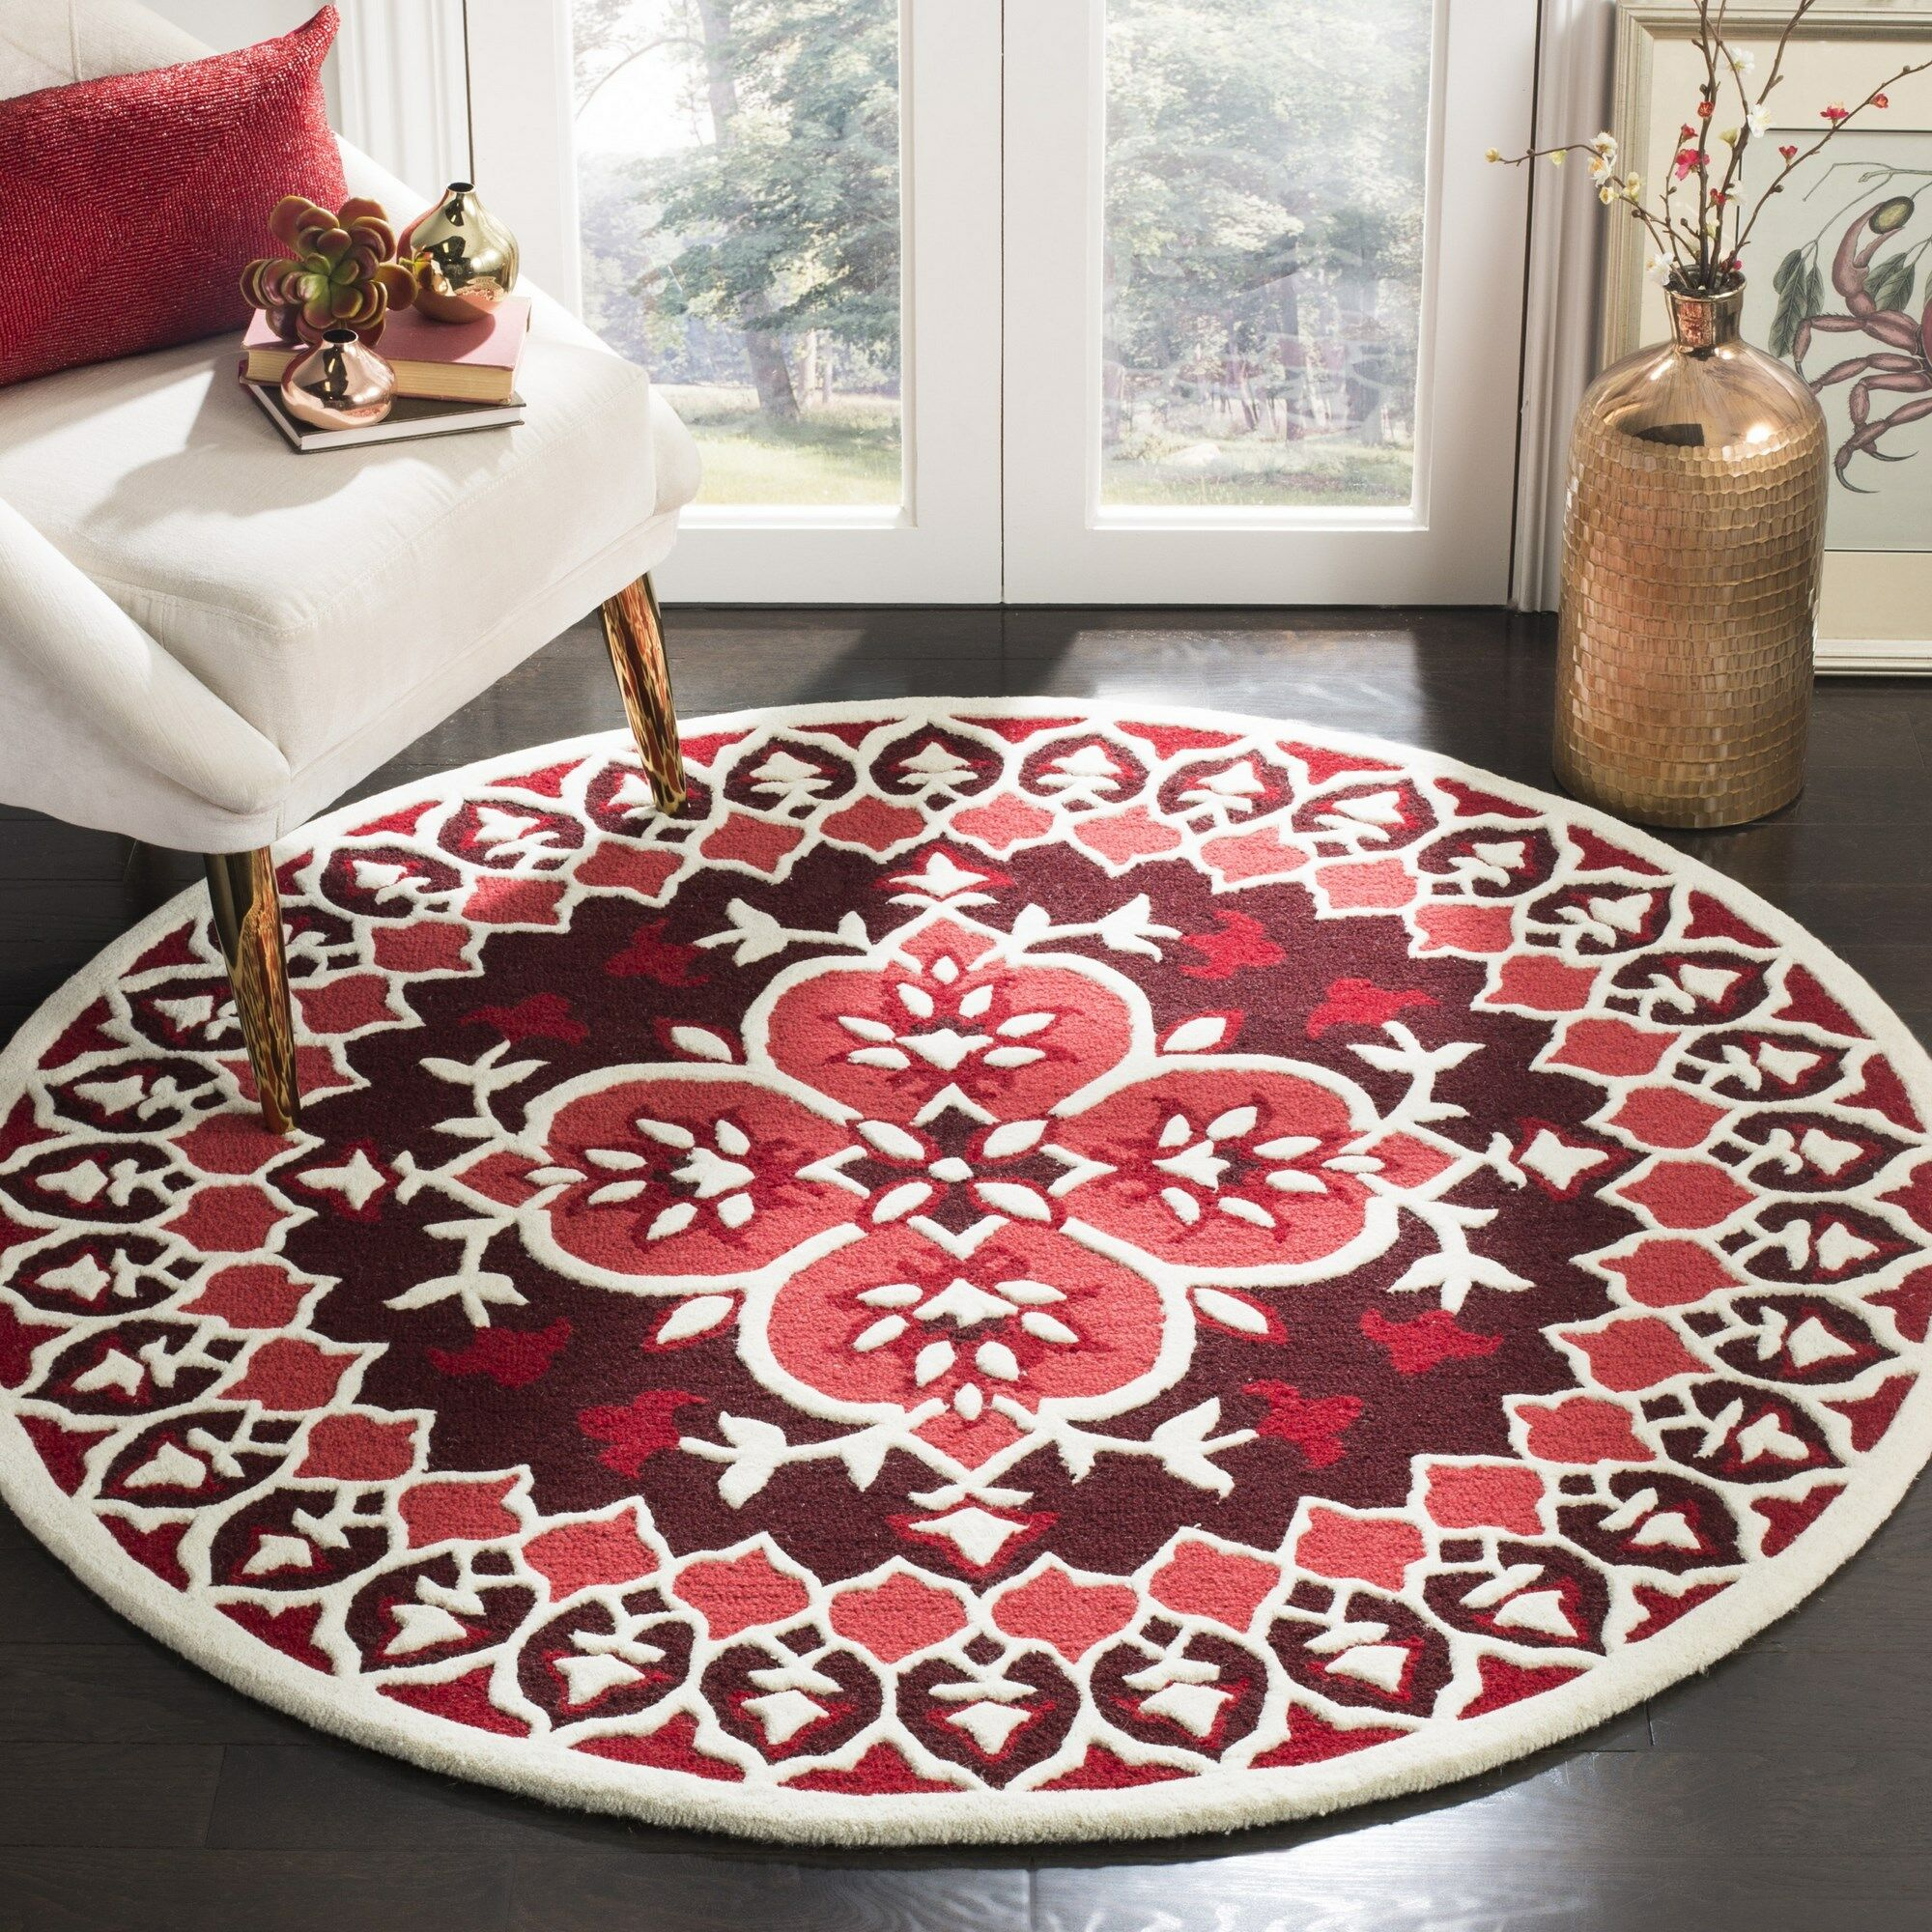 Bellagio Hand-Tufted Wool Red/Ivory Area Rug Rug Size: Rectangle 5' x 8'